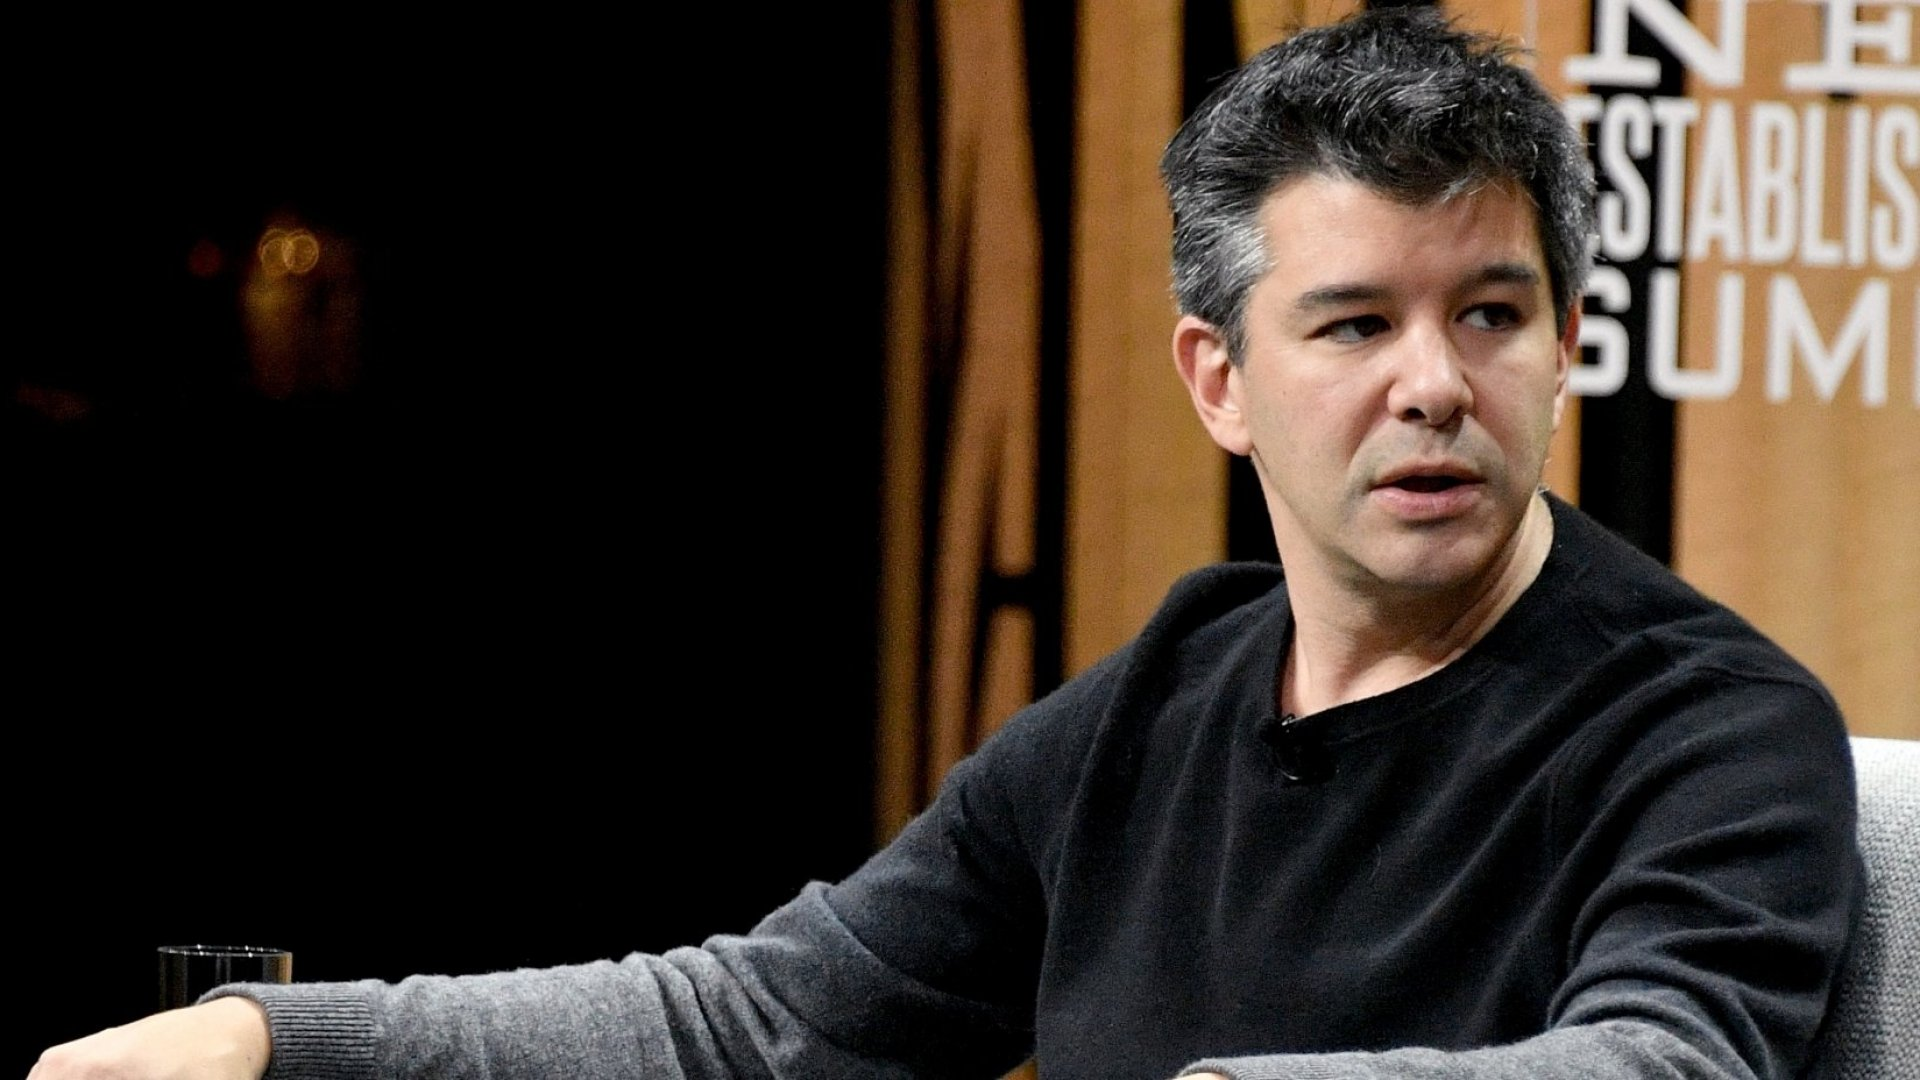 Investors to Uber: 'We Have Hit a Dead End'